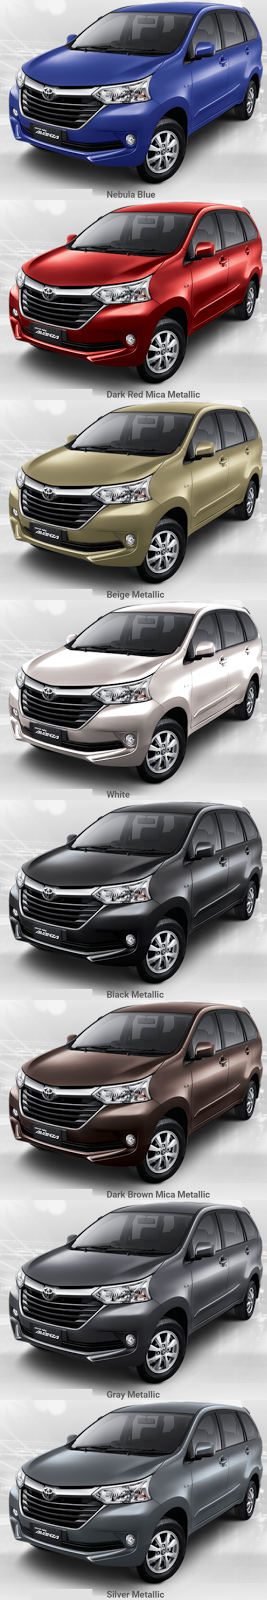 warna grand new avanza dark brown review toyota veloz dealer mobil jogja harga kredit promo